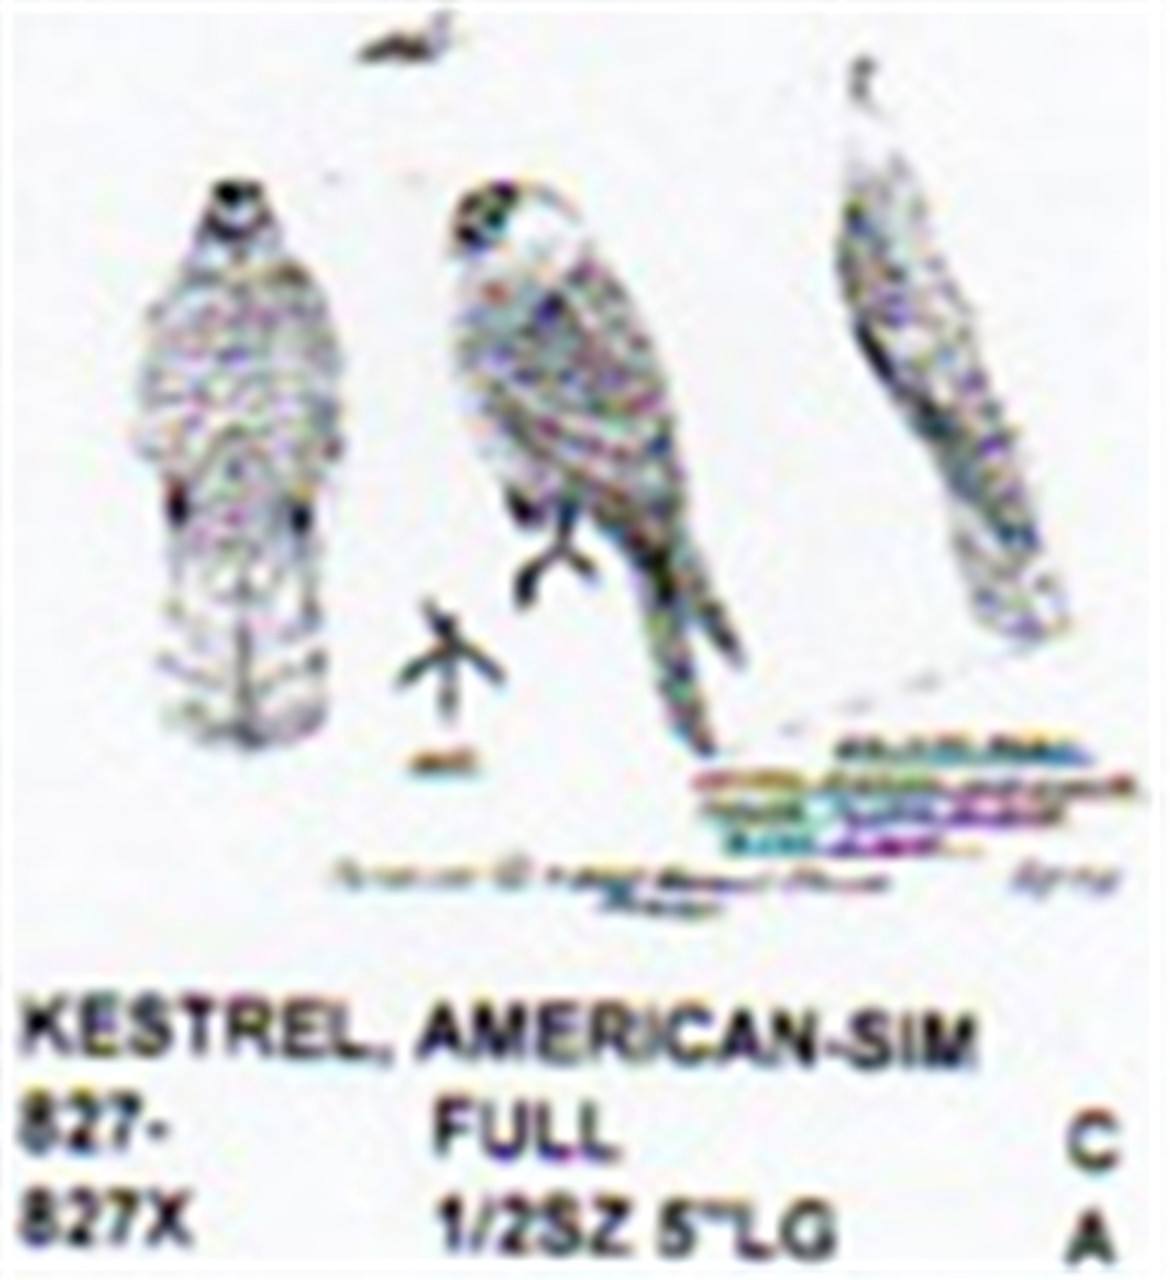 American Kestrel Perching/Relaxed Carving Pattern showing the Kestrel in a puffed up relaxed position.